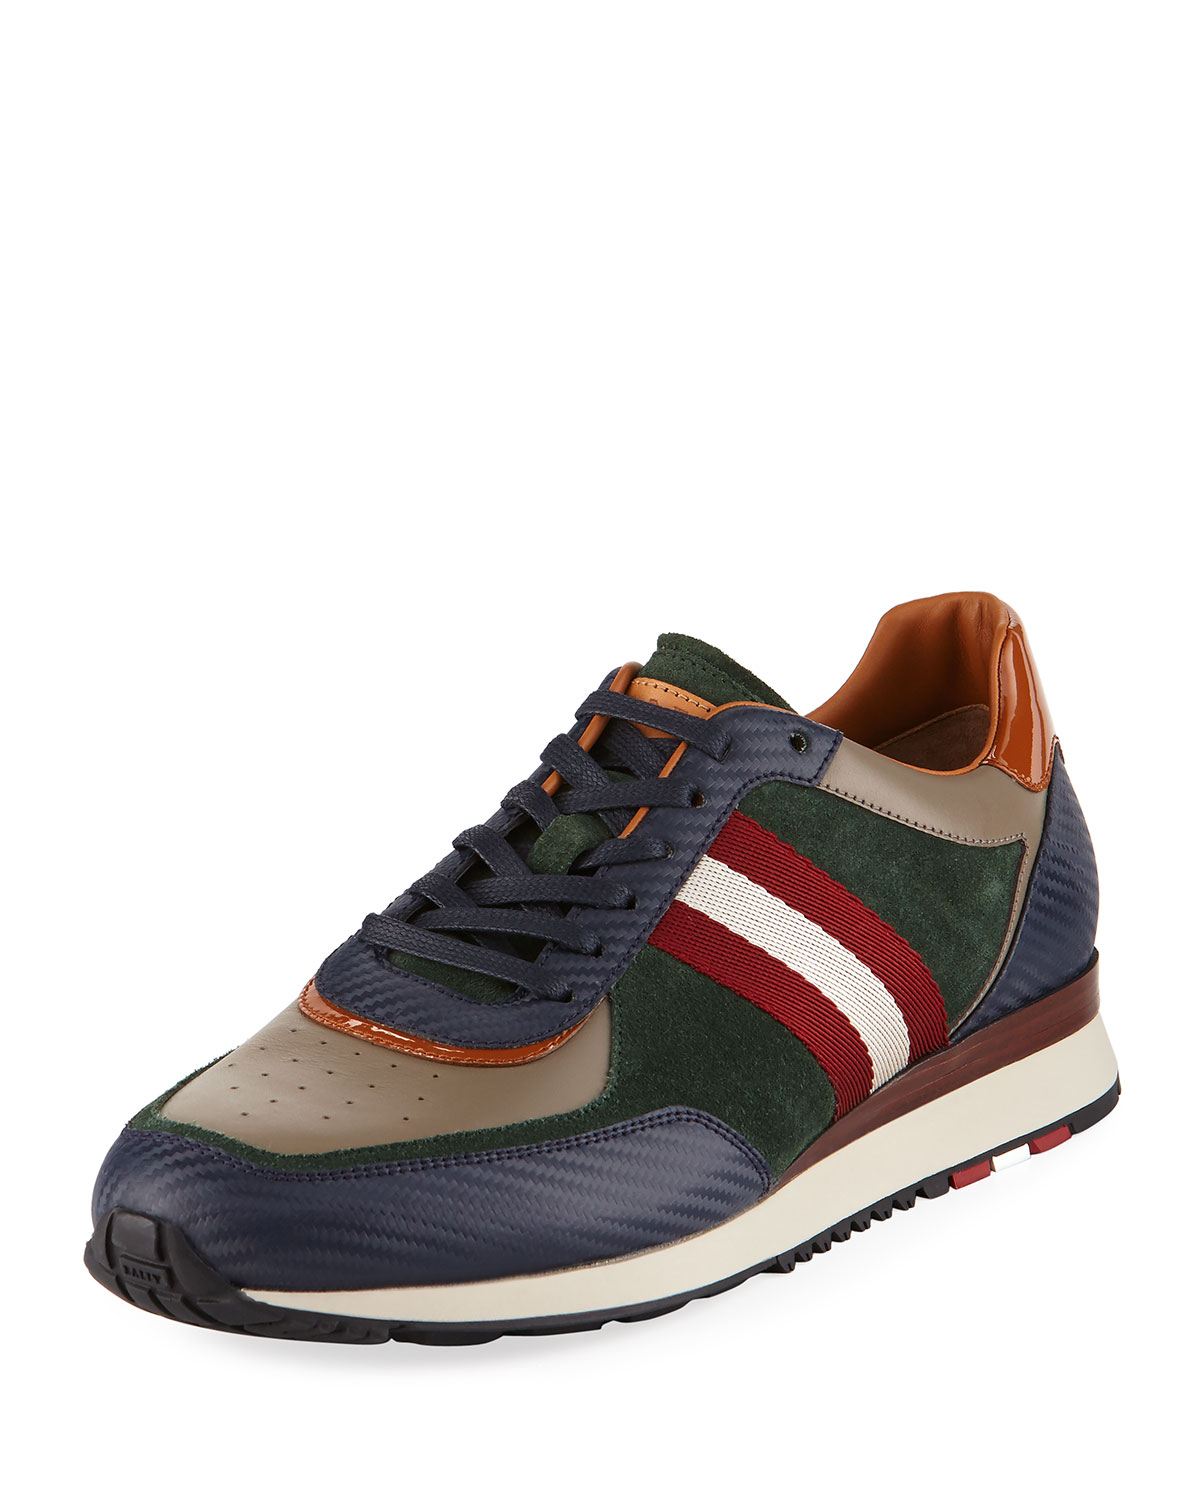 41d92fbb259deb Bally Aston Suede   Leather Running Sneaker